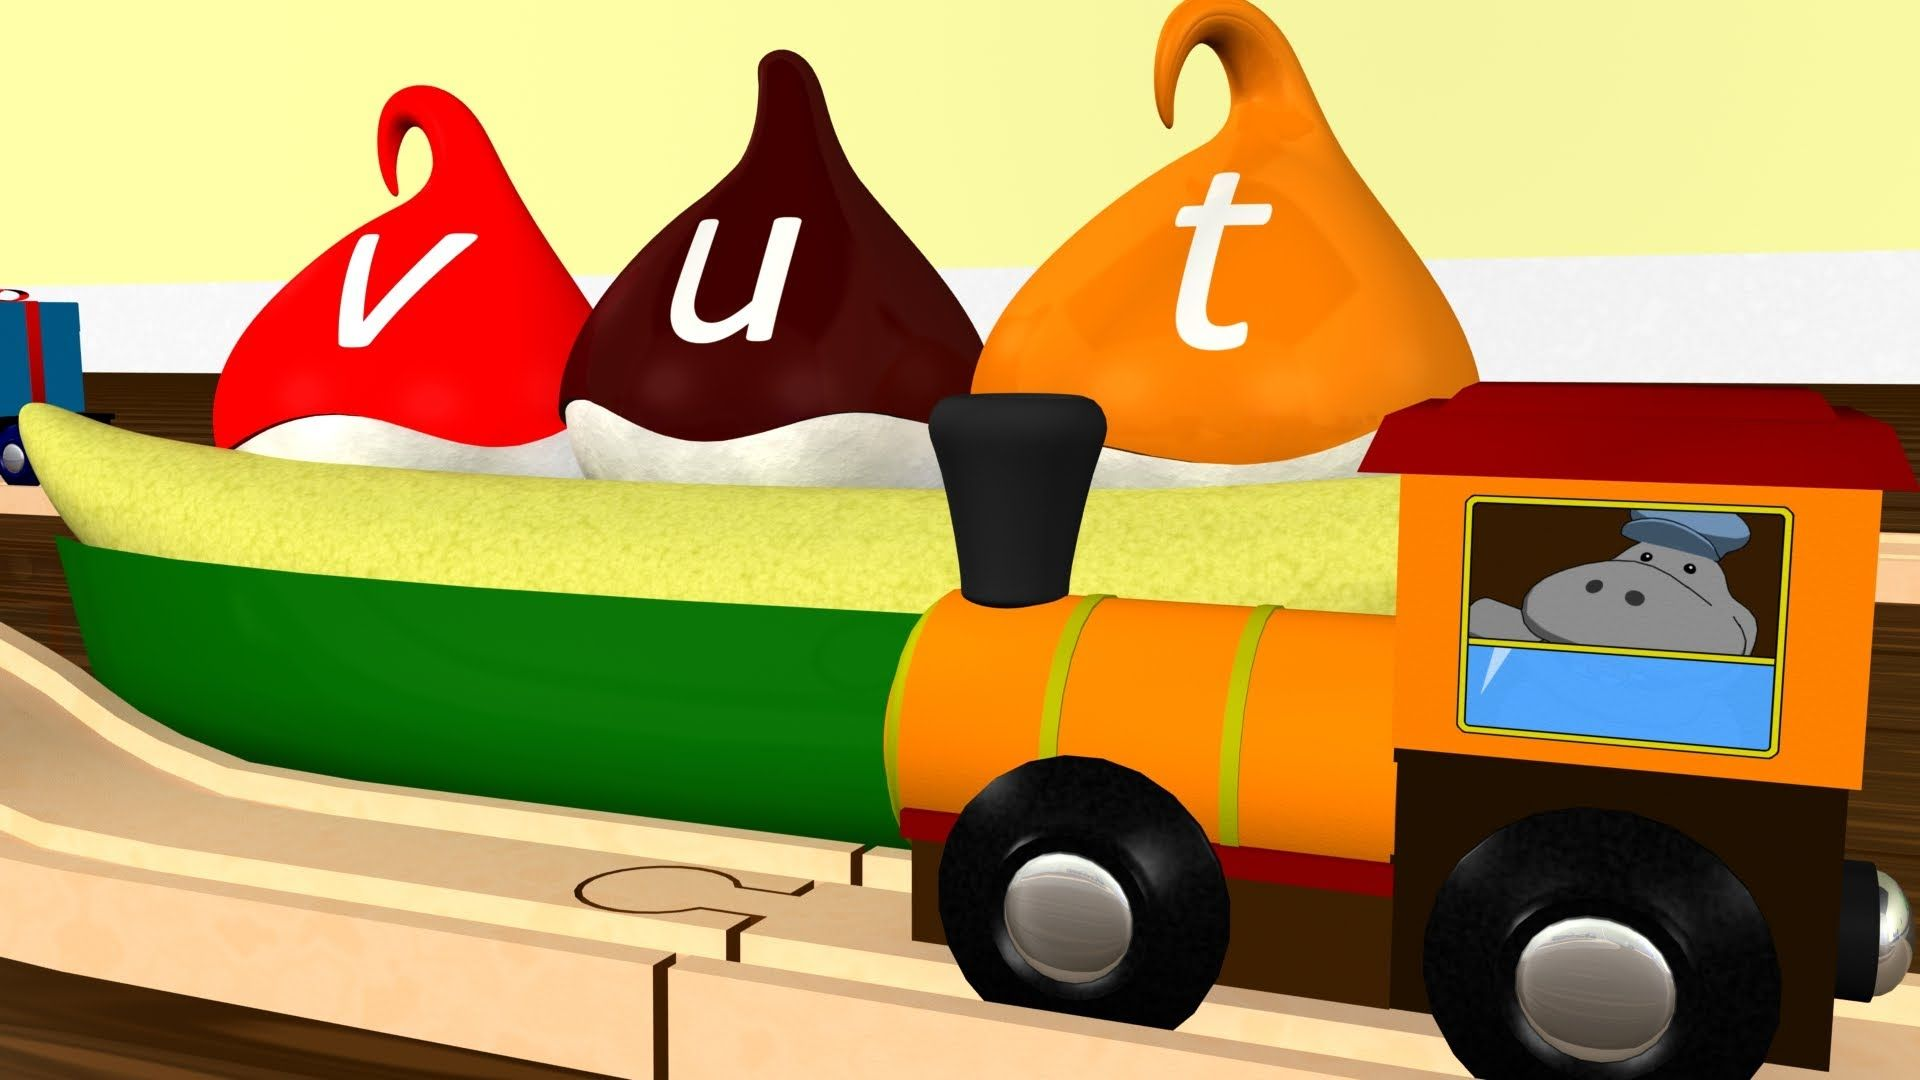 Learn lowercase letters aboard the Wooden Alphabet Train! #train #alphabet #toddlers #education https://www.youtube.com/watch?v=fMr9QAYmqLA